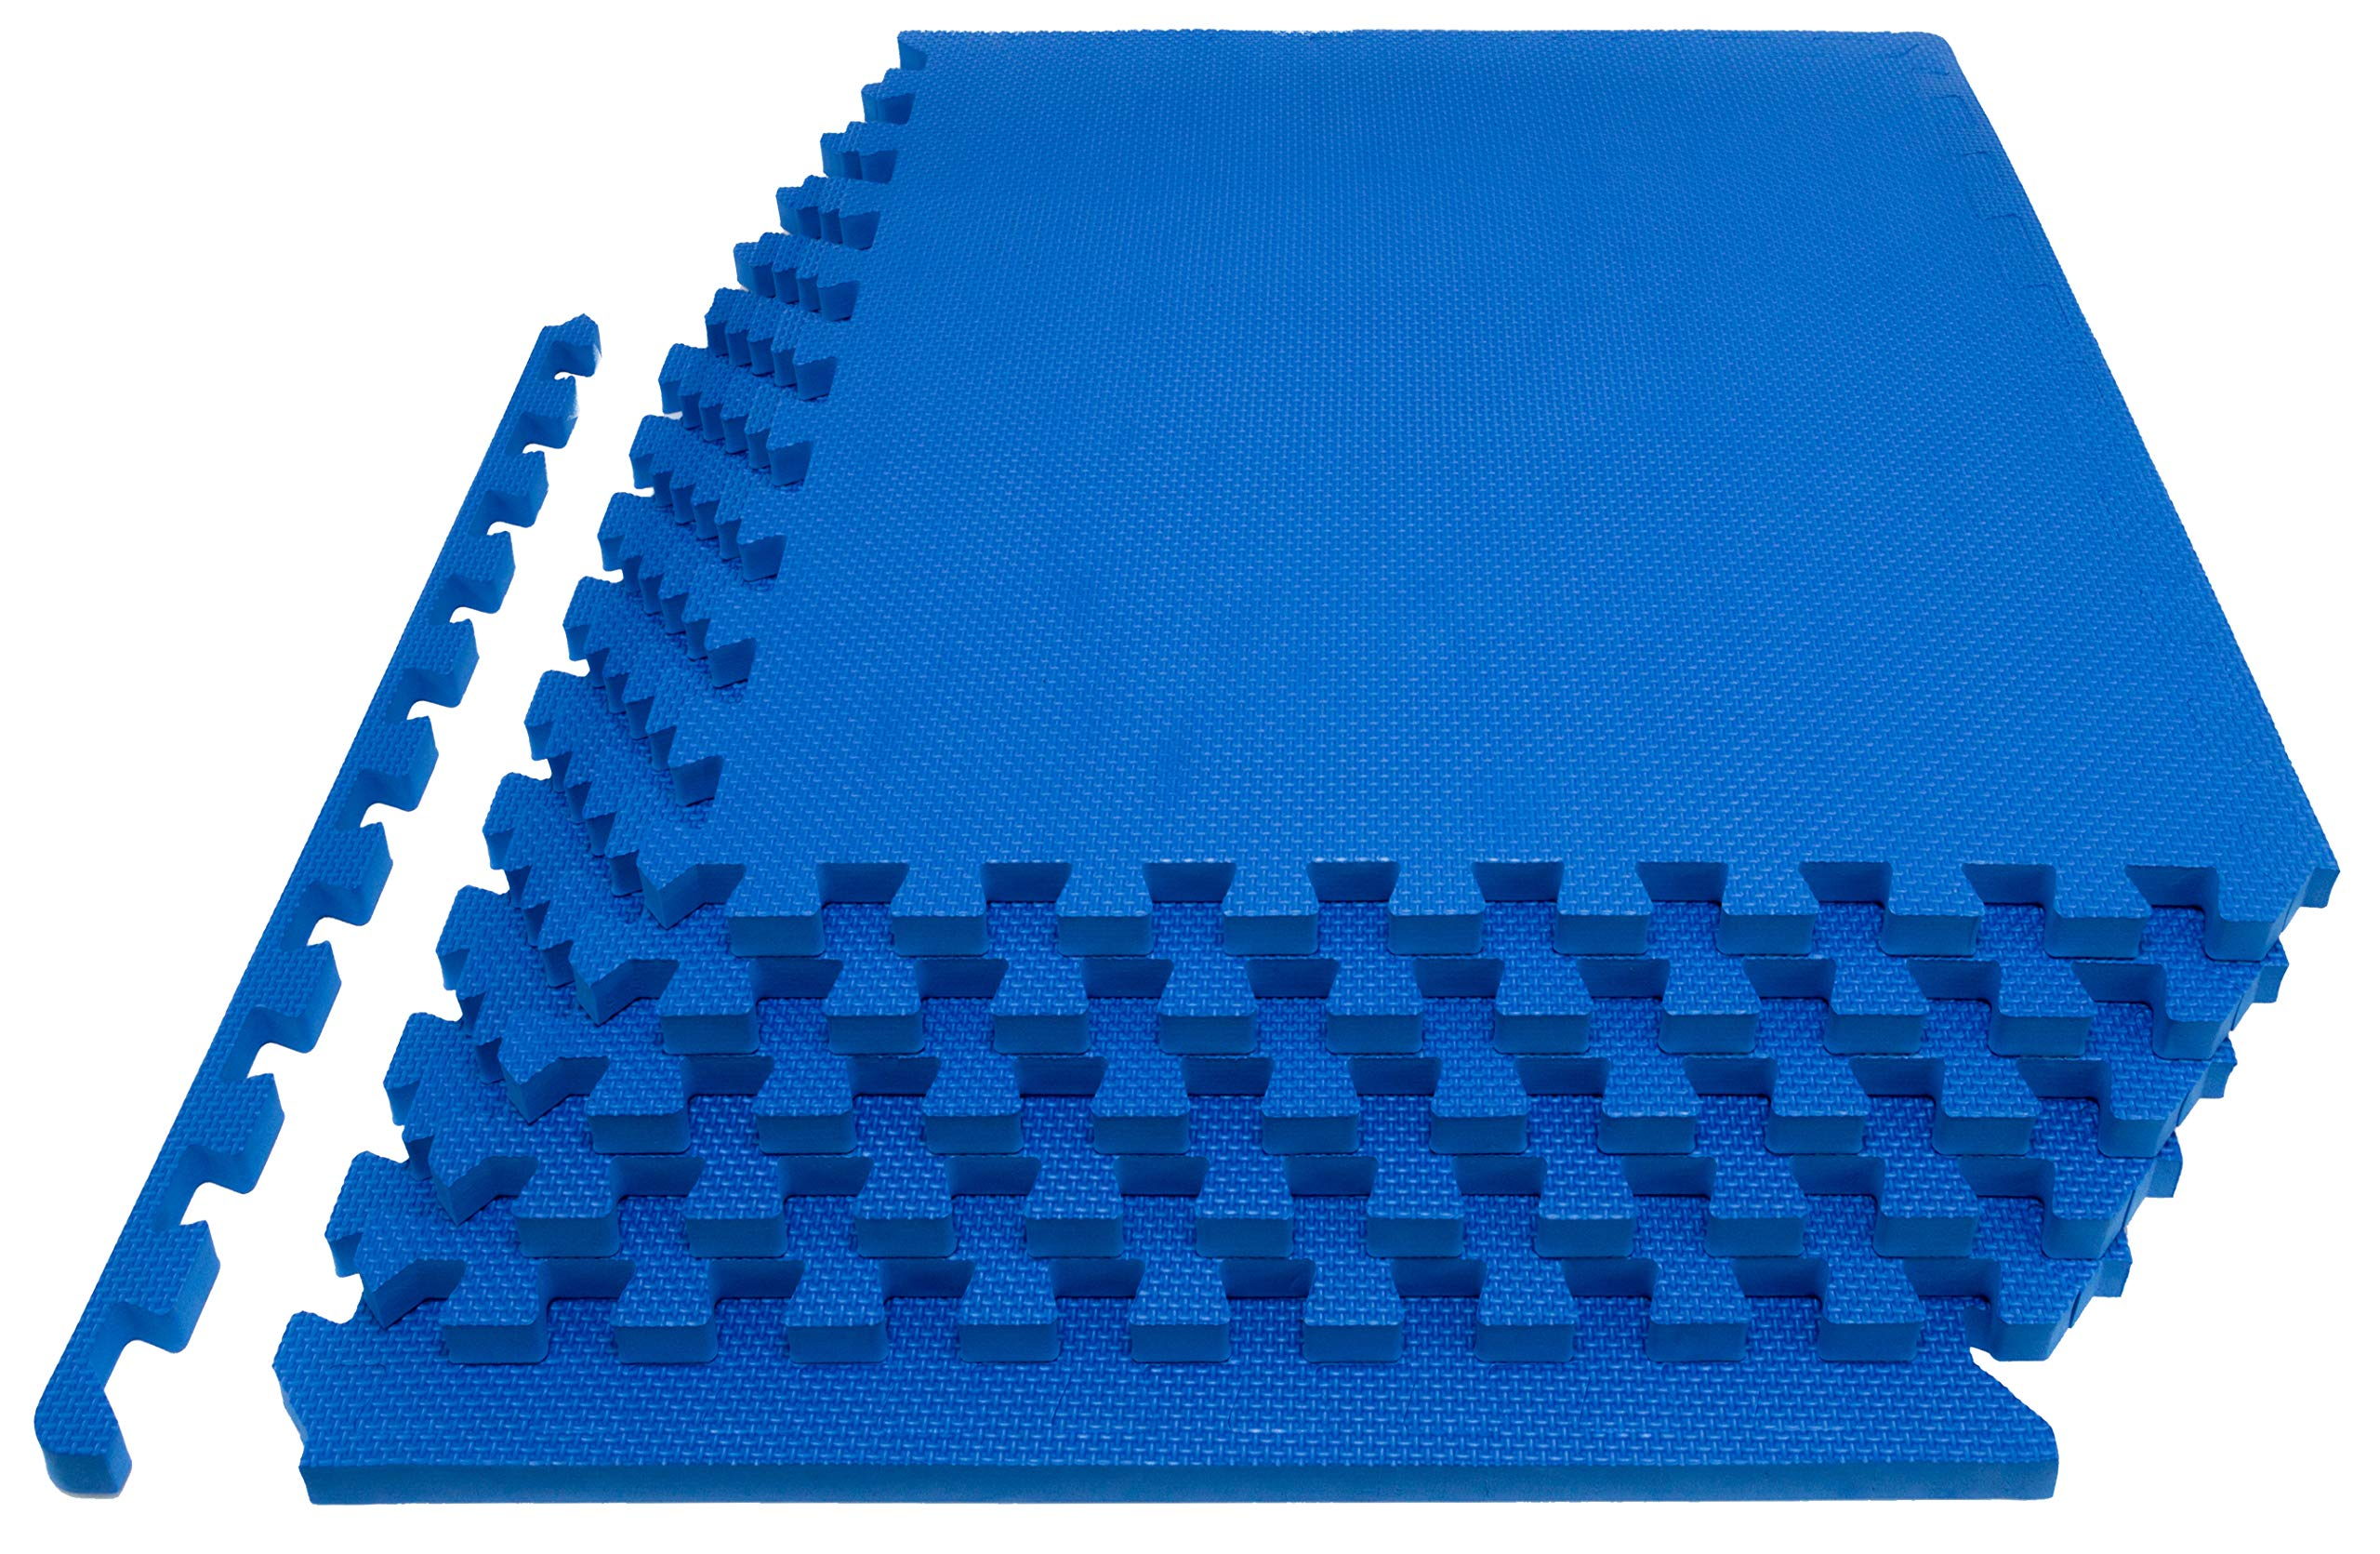 Prosource Fit Extra Thick Puzzle Exercise Mat 1'', EVA Foam Interlocking Tiles for Protective, Cushioned Workout Flooring for Home and Gym Equipment, Blue